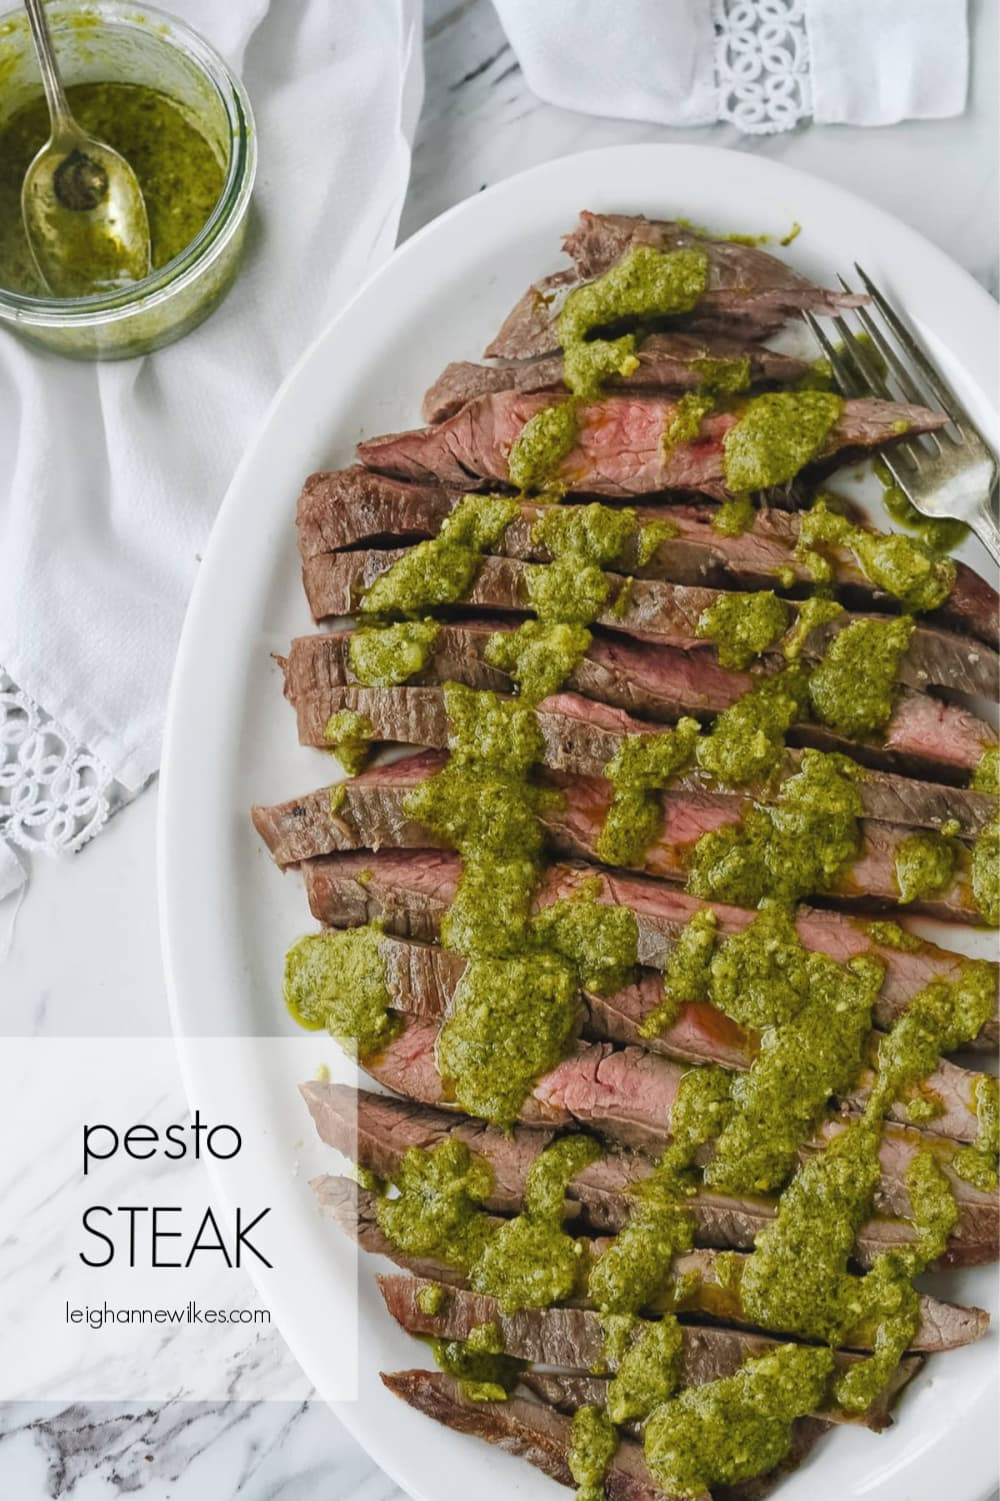 steak with pesto drizzled over it